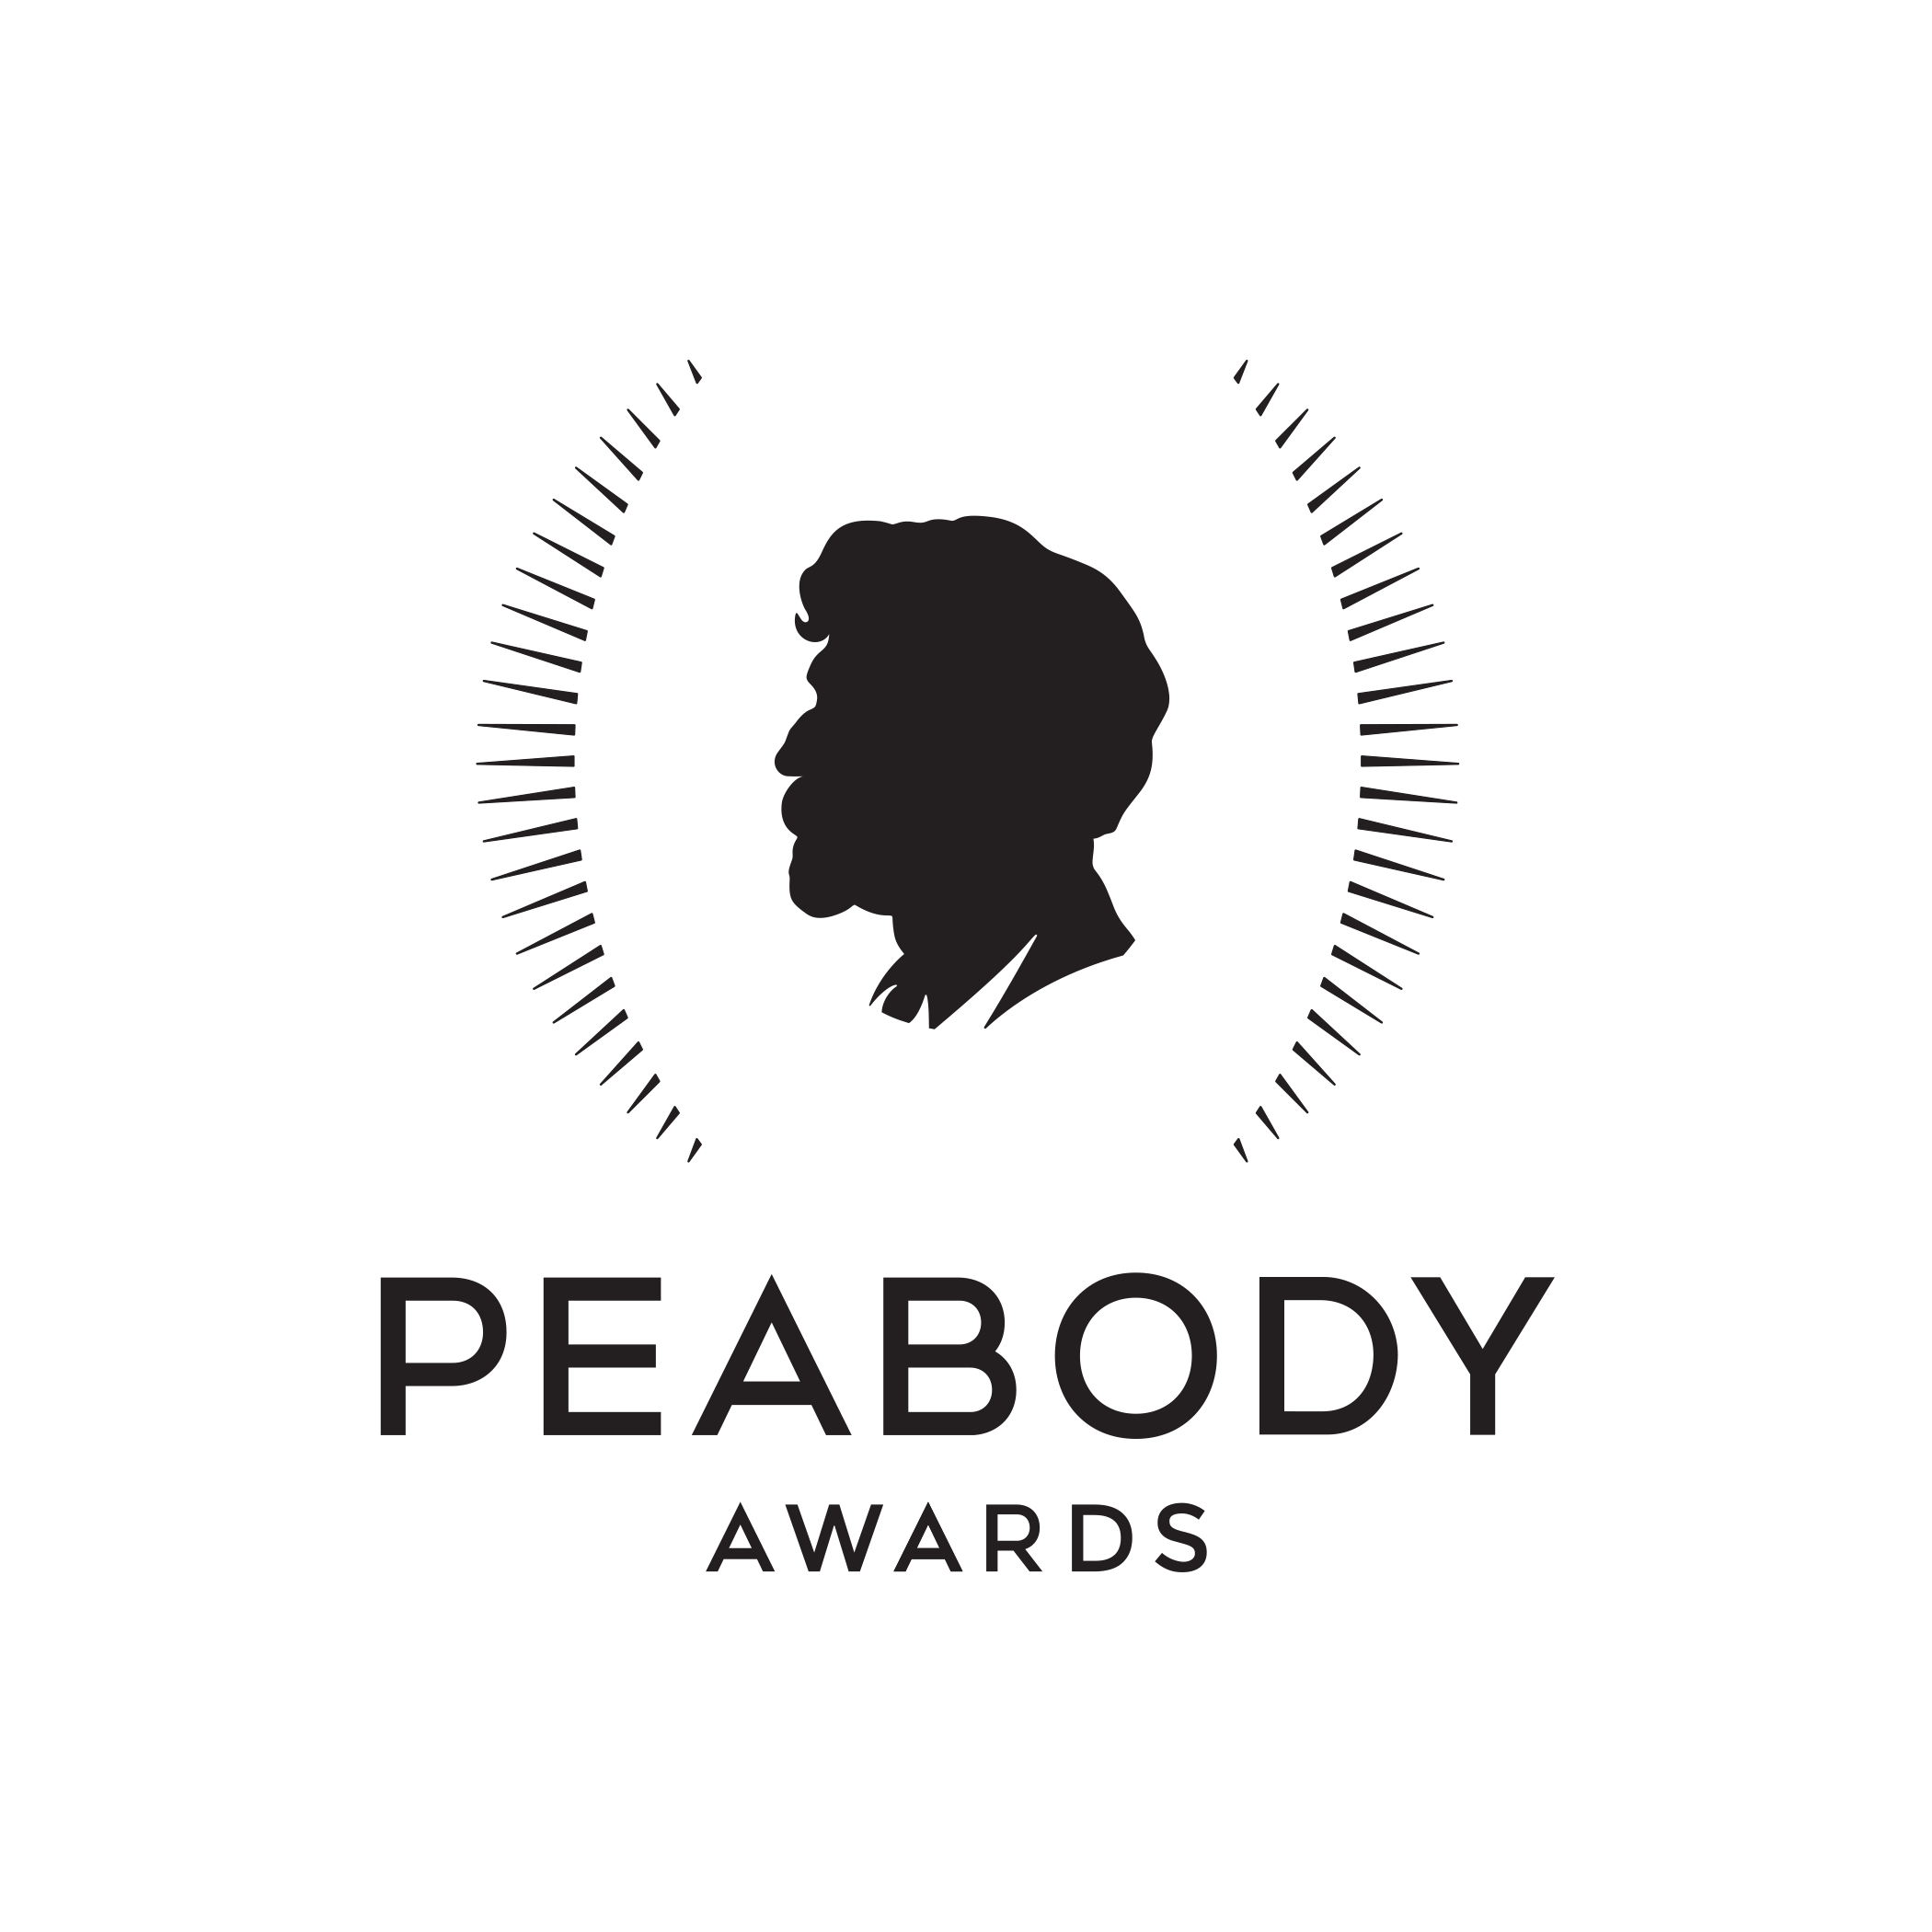 Avatar - Peabody Awards